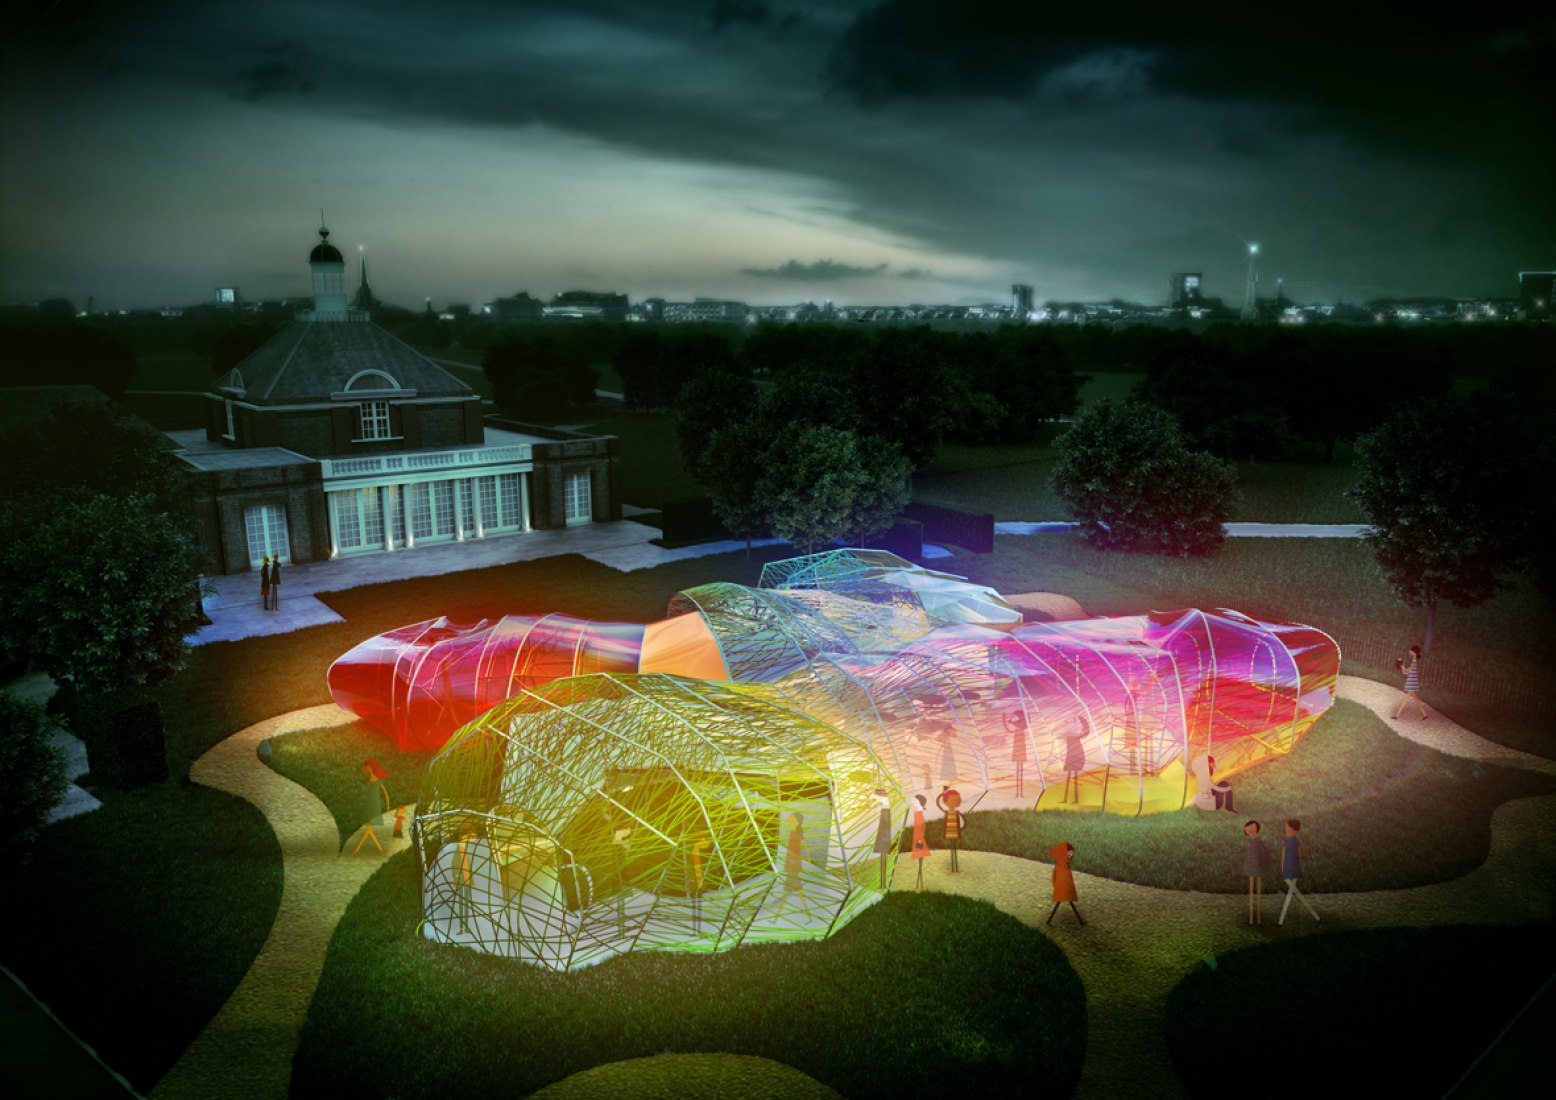 2015 Serpentine Pavilion designed by SelgasCano 2015 Indicative CGI © Steven Kevin Howson / SelgasCano